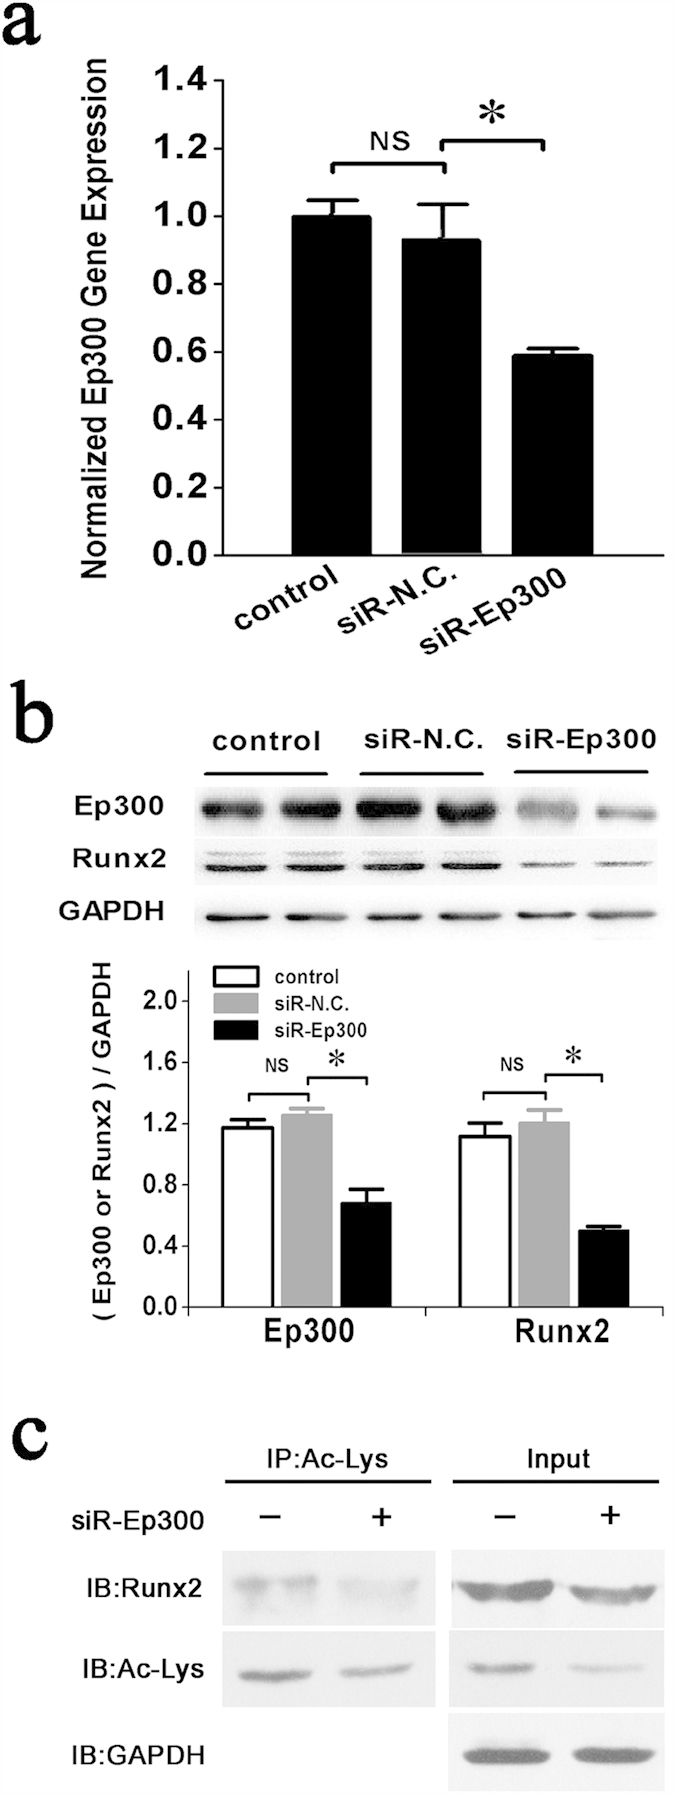 Inhibition of Ep300 expression by miR-132-3p decreases the stability and acetylation levels of Runx2. ( a ) qRT-PCR analysis of Ep300 gene expression in prOB cells was performed after transfection with siRNA-Ep300. (n = 3). ( b ) Western blot examination of Runx2 protein expression in prOB cells in which Ep300 expression was inhibited by siRNA. (n = 4). ( c ) Levels of acetylated Runx2 were detected by immunoprecipitation using an anti-acetyl-lysine antibody (Ac-lys), followed by a western blot with an anti-Runx2 antibody. (n = 3). For each group, values are mean ± SD, * P